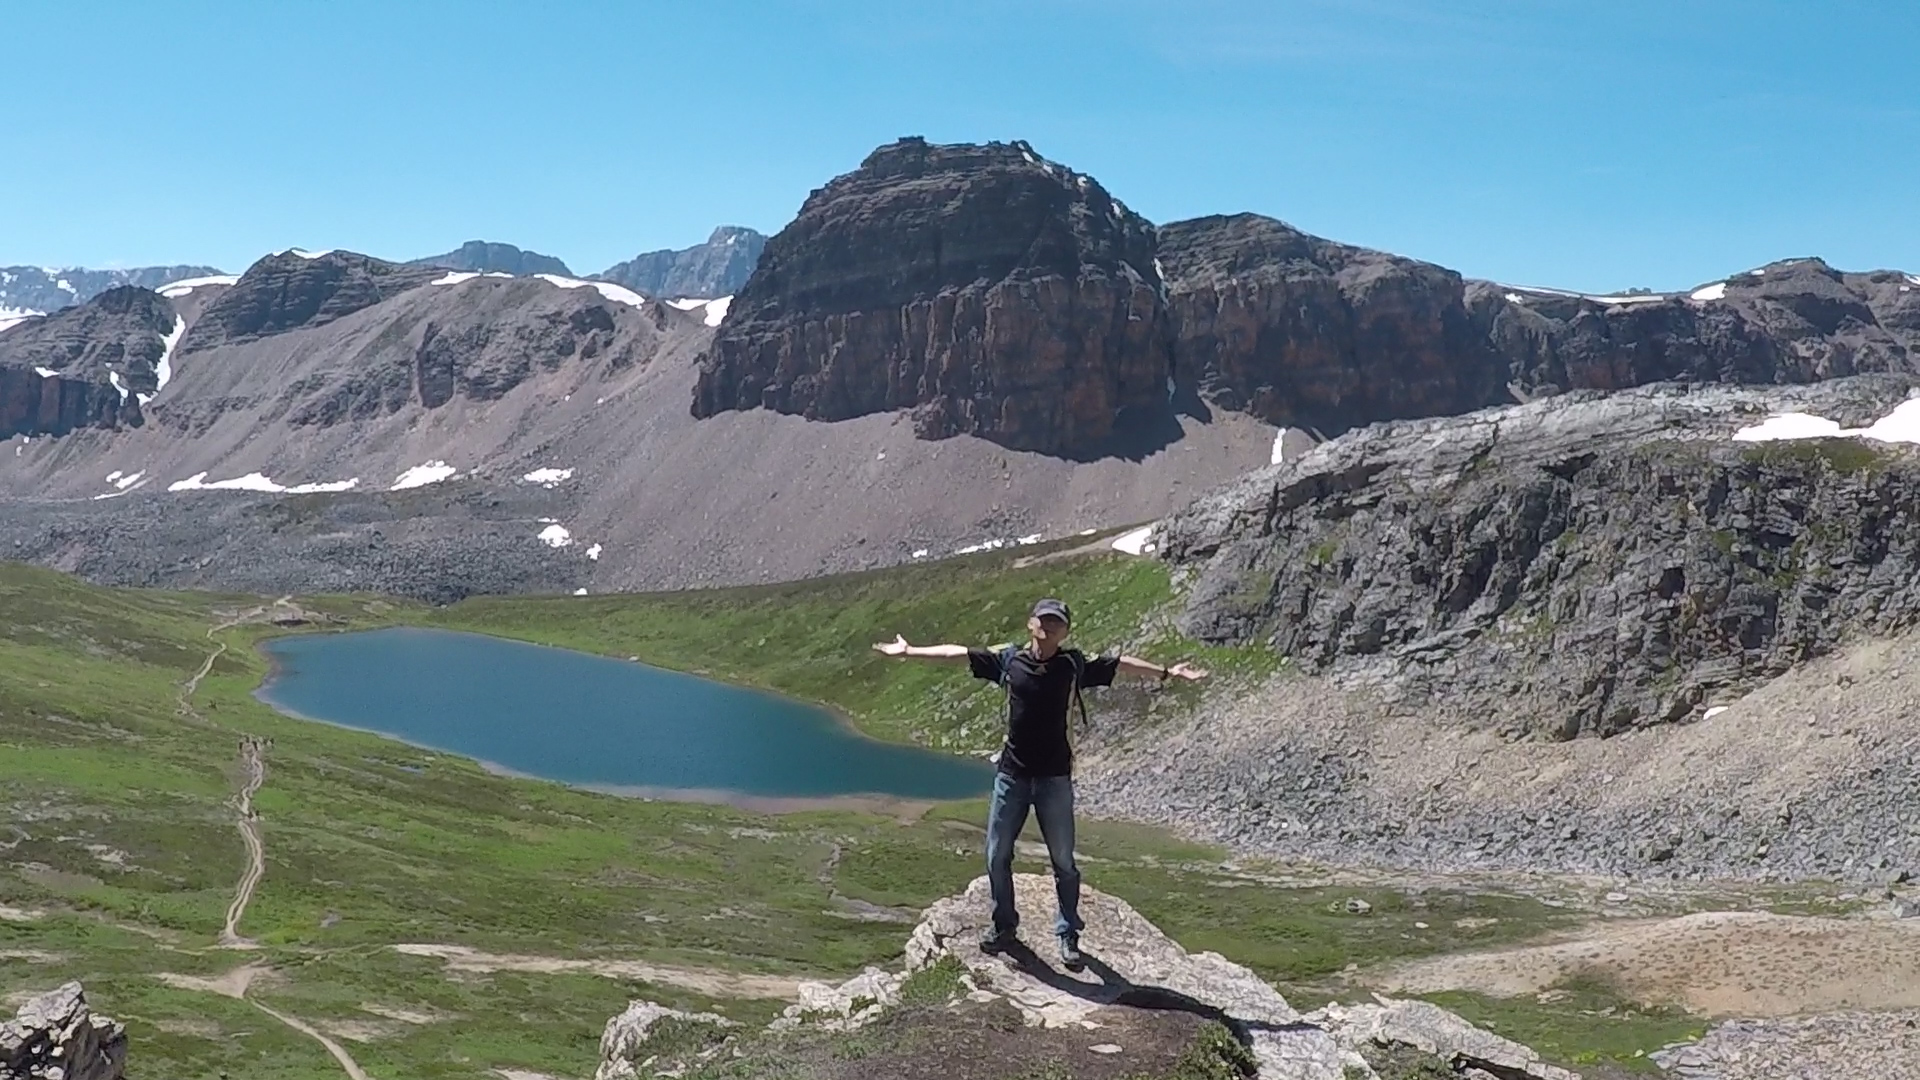 Guided hiking adventure in the Rockies in Canada.